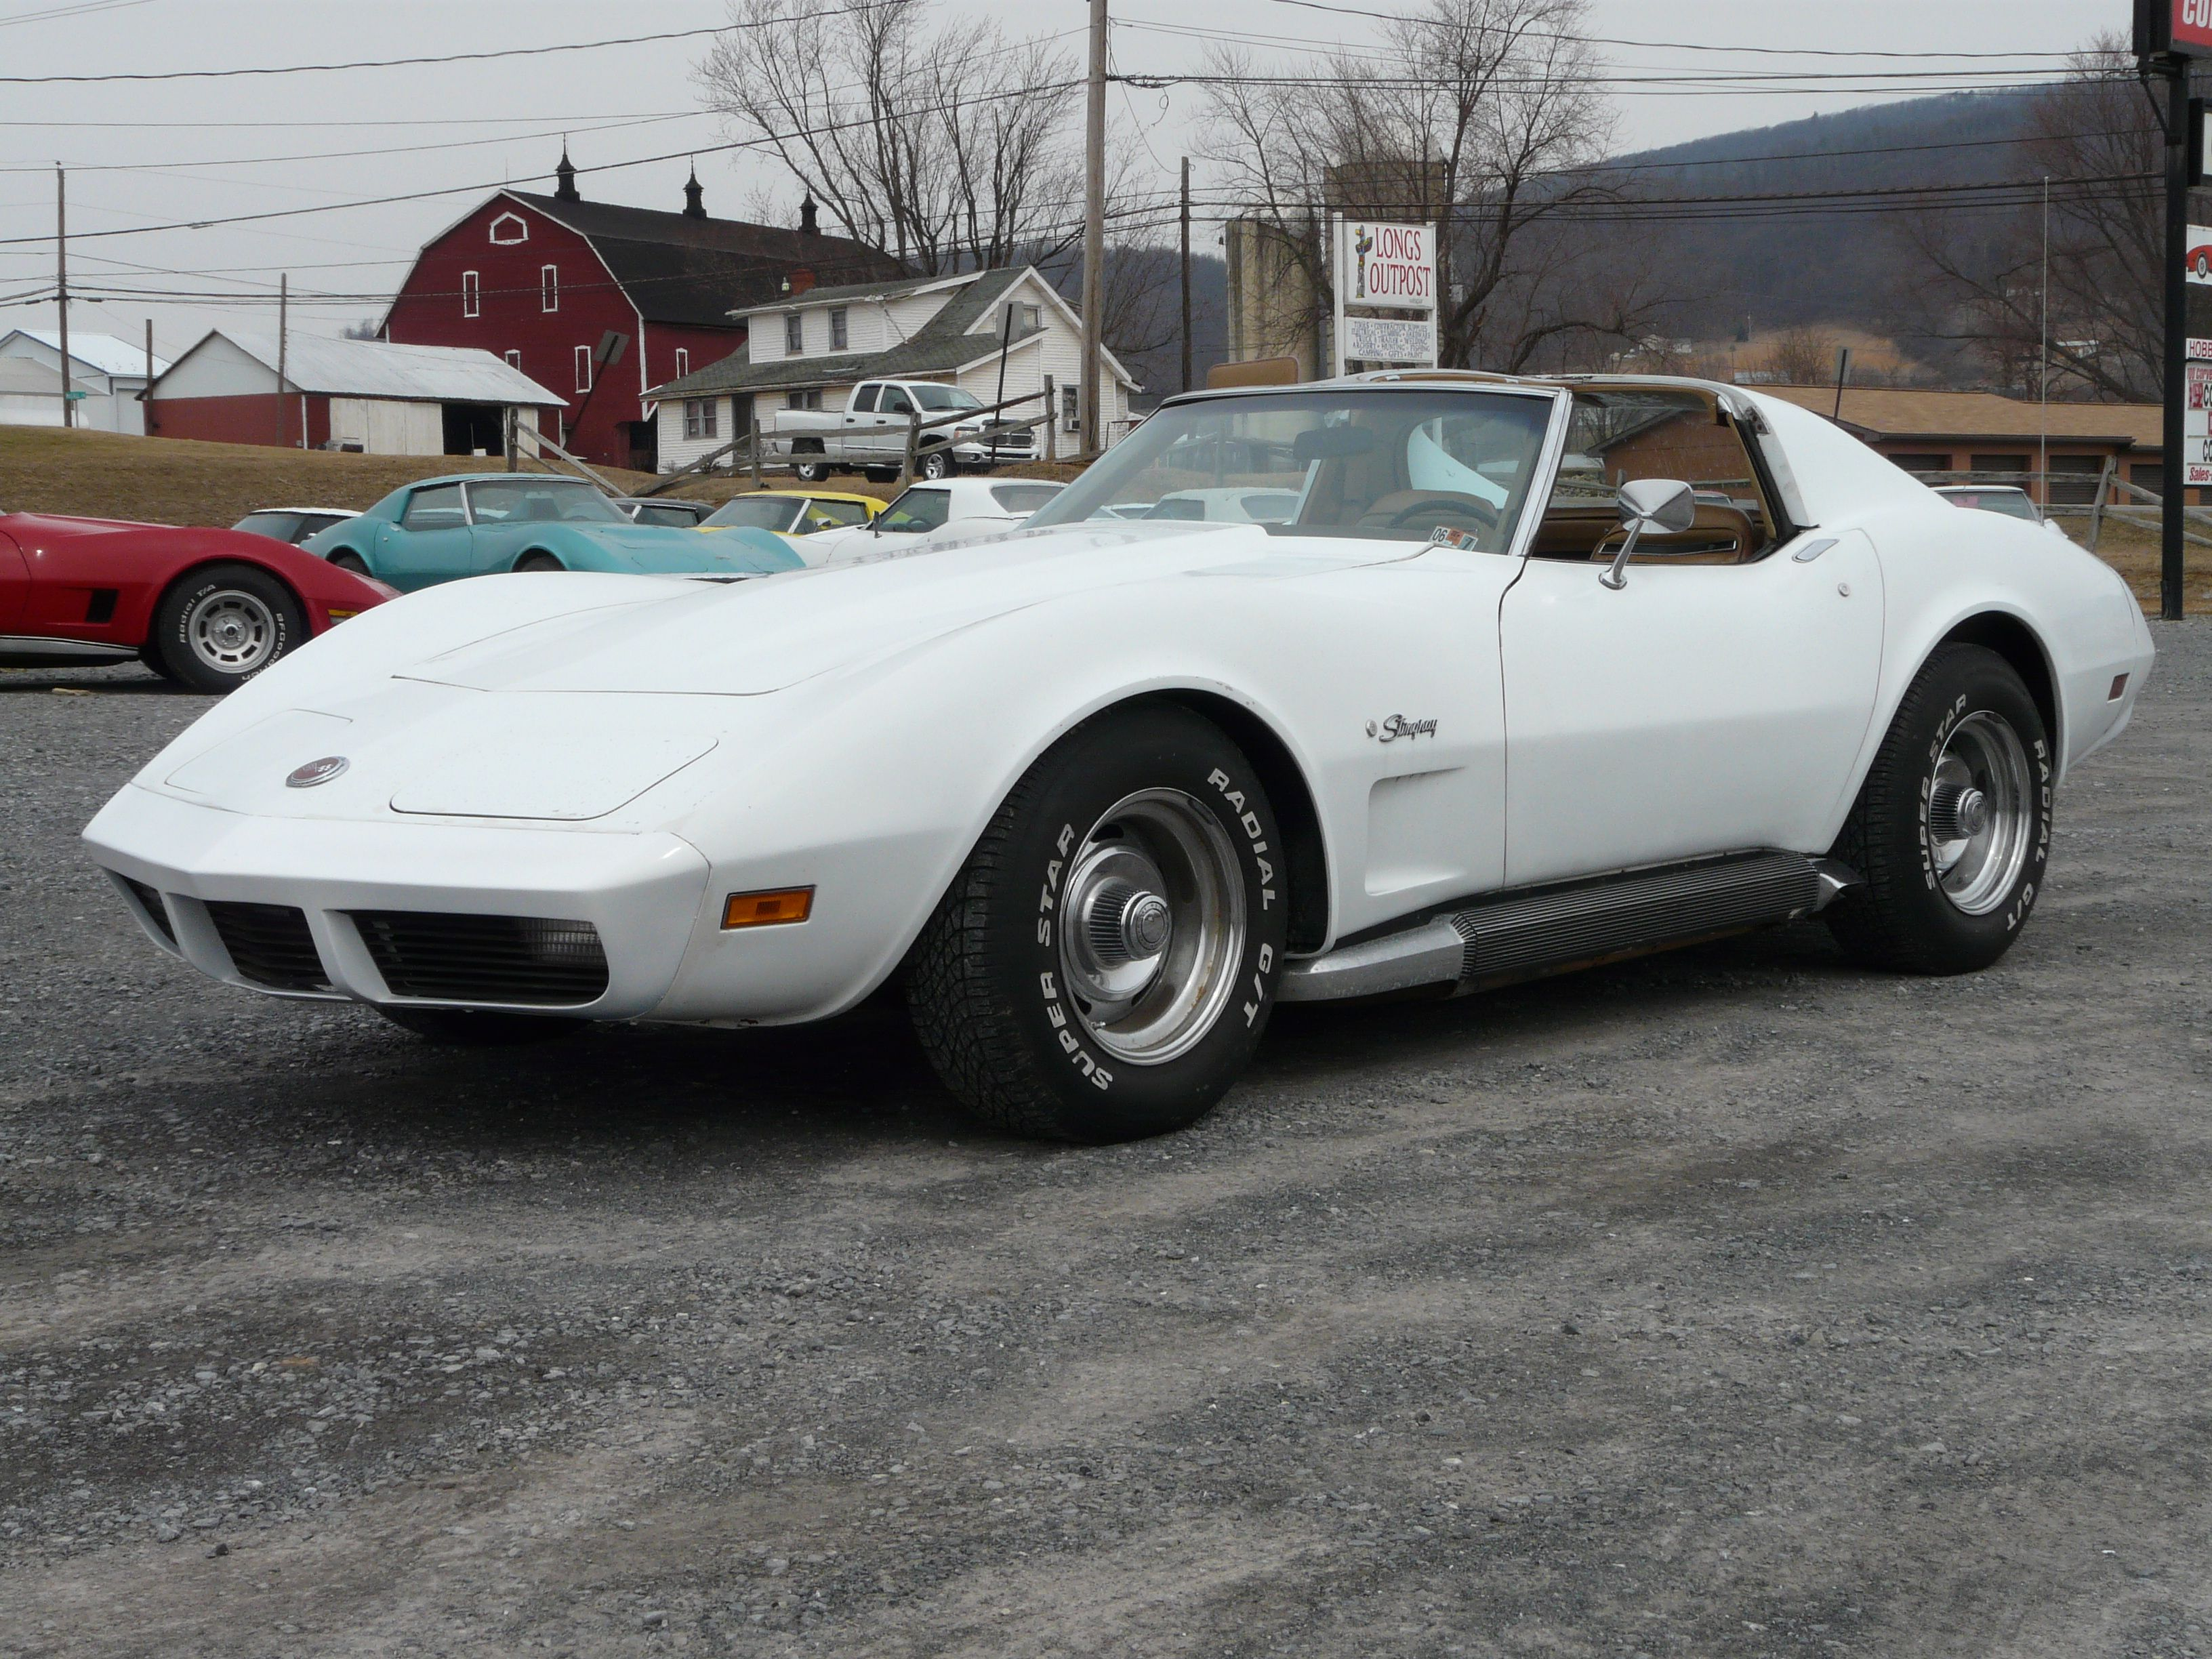 Picture of 1973 chevrolet corvette coupe exterior - 1974 White Corvette Stingray T Top 4spd Check Out This Vette 1973 Blue Corvette T